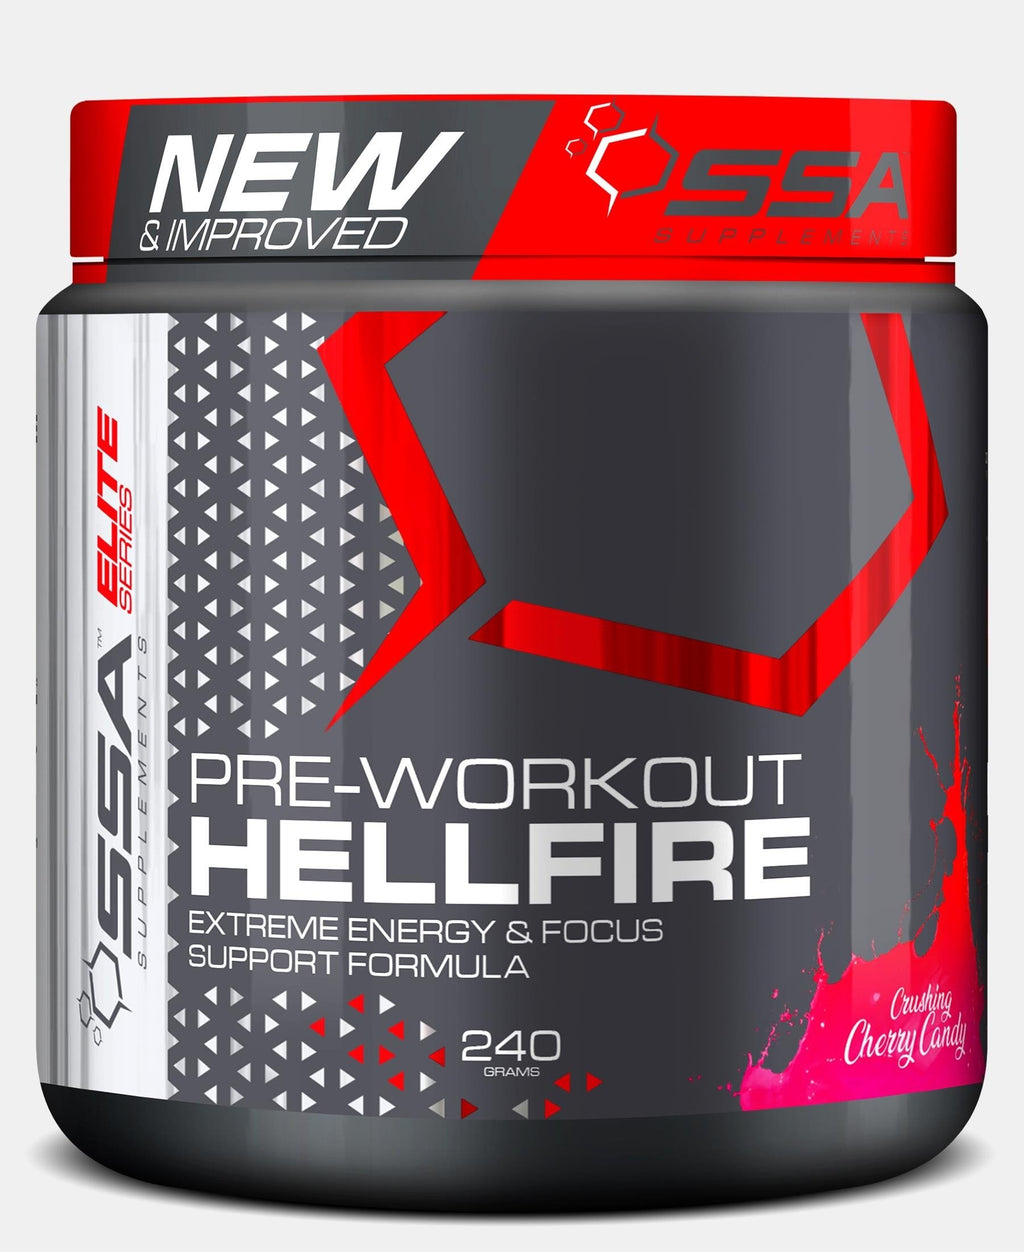 240G Hellfire Crushing Cherry Candy - Black